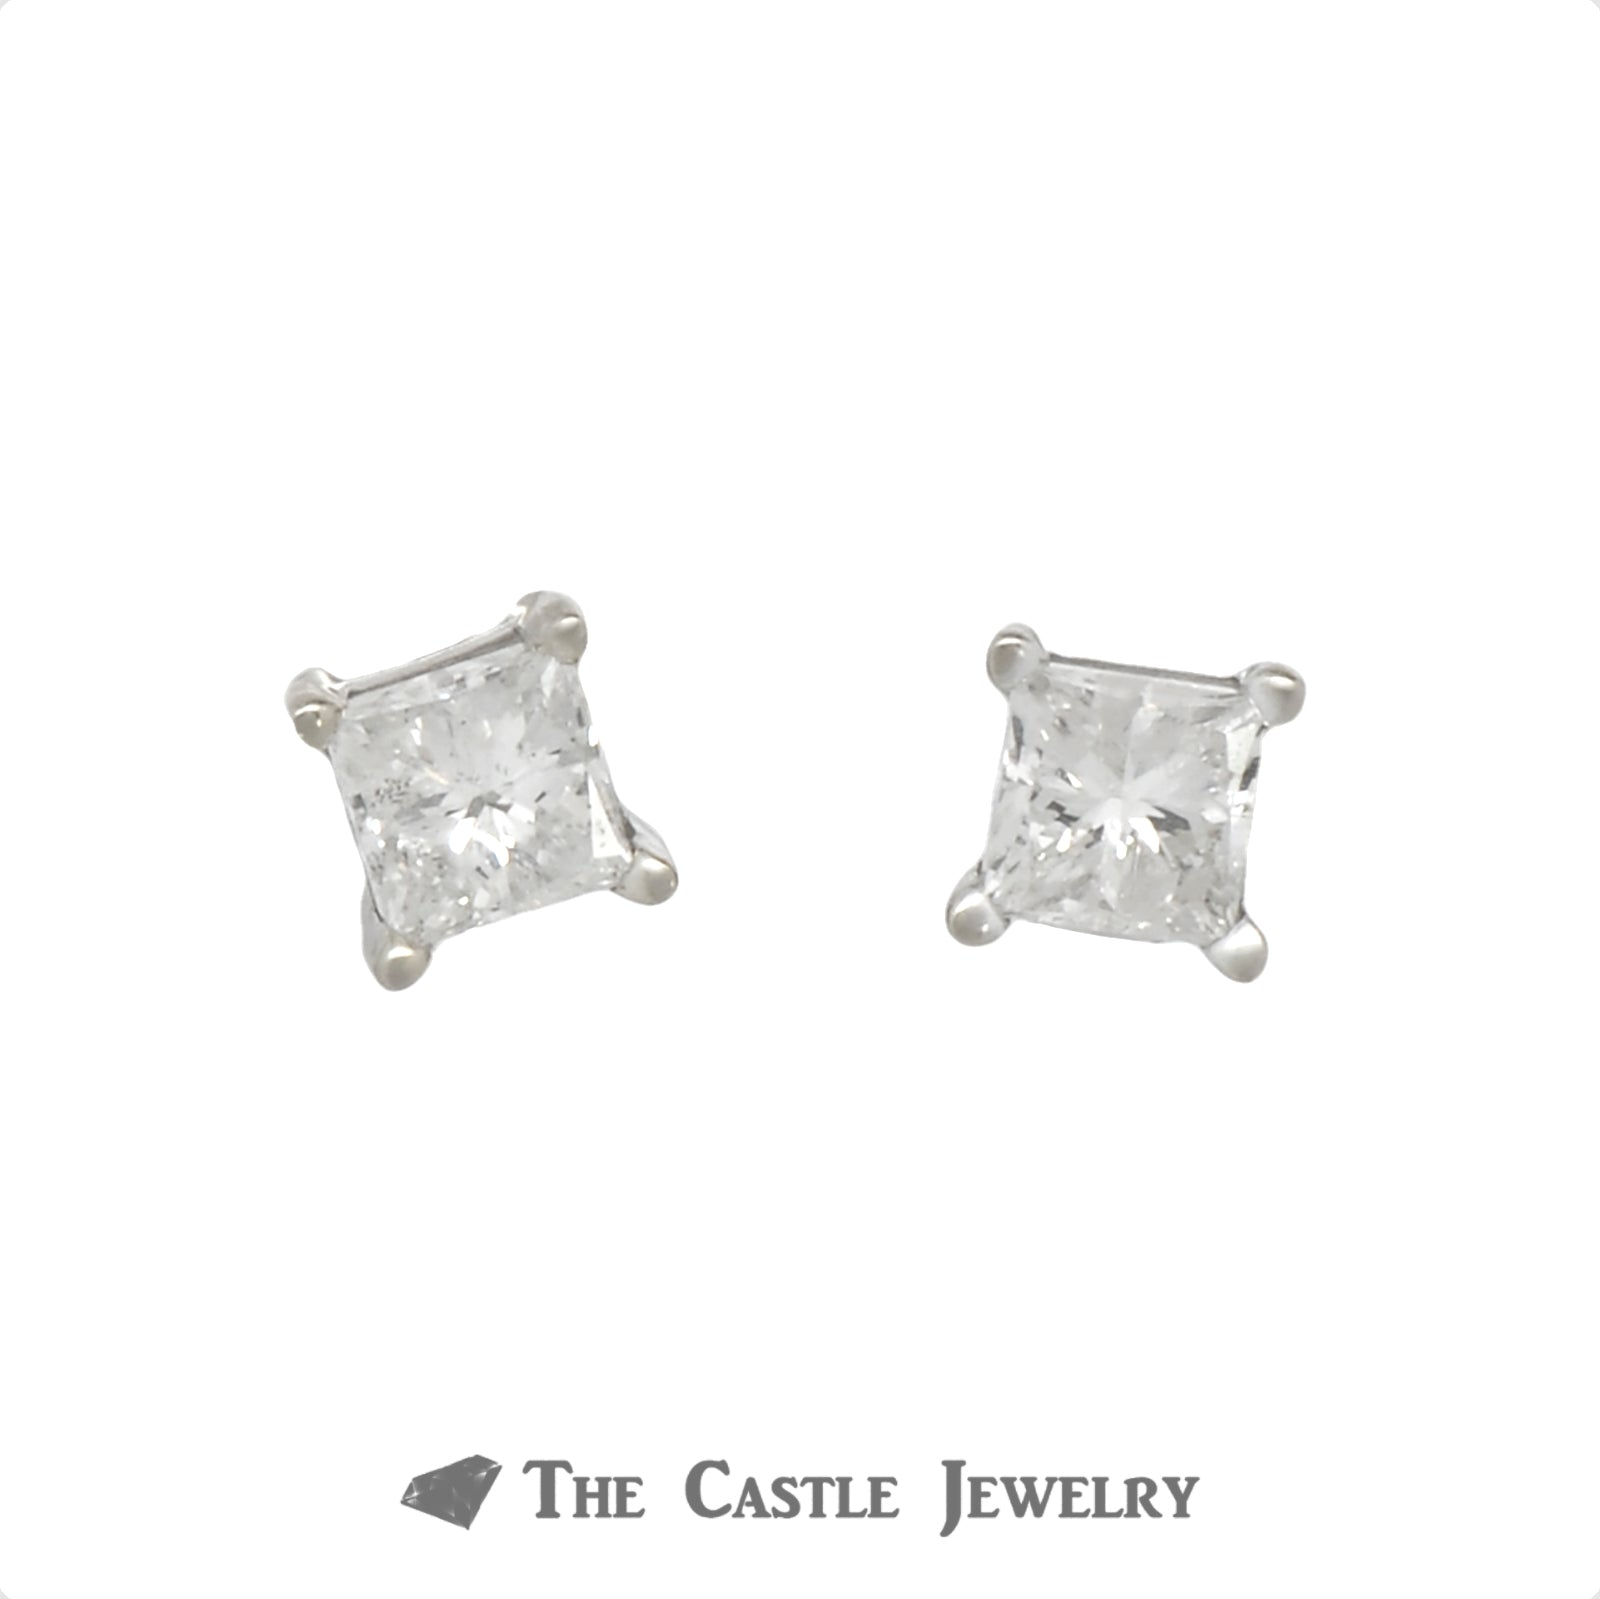 Princess Cut Diamond Stud Earrings in 14k White Gold